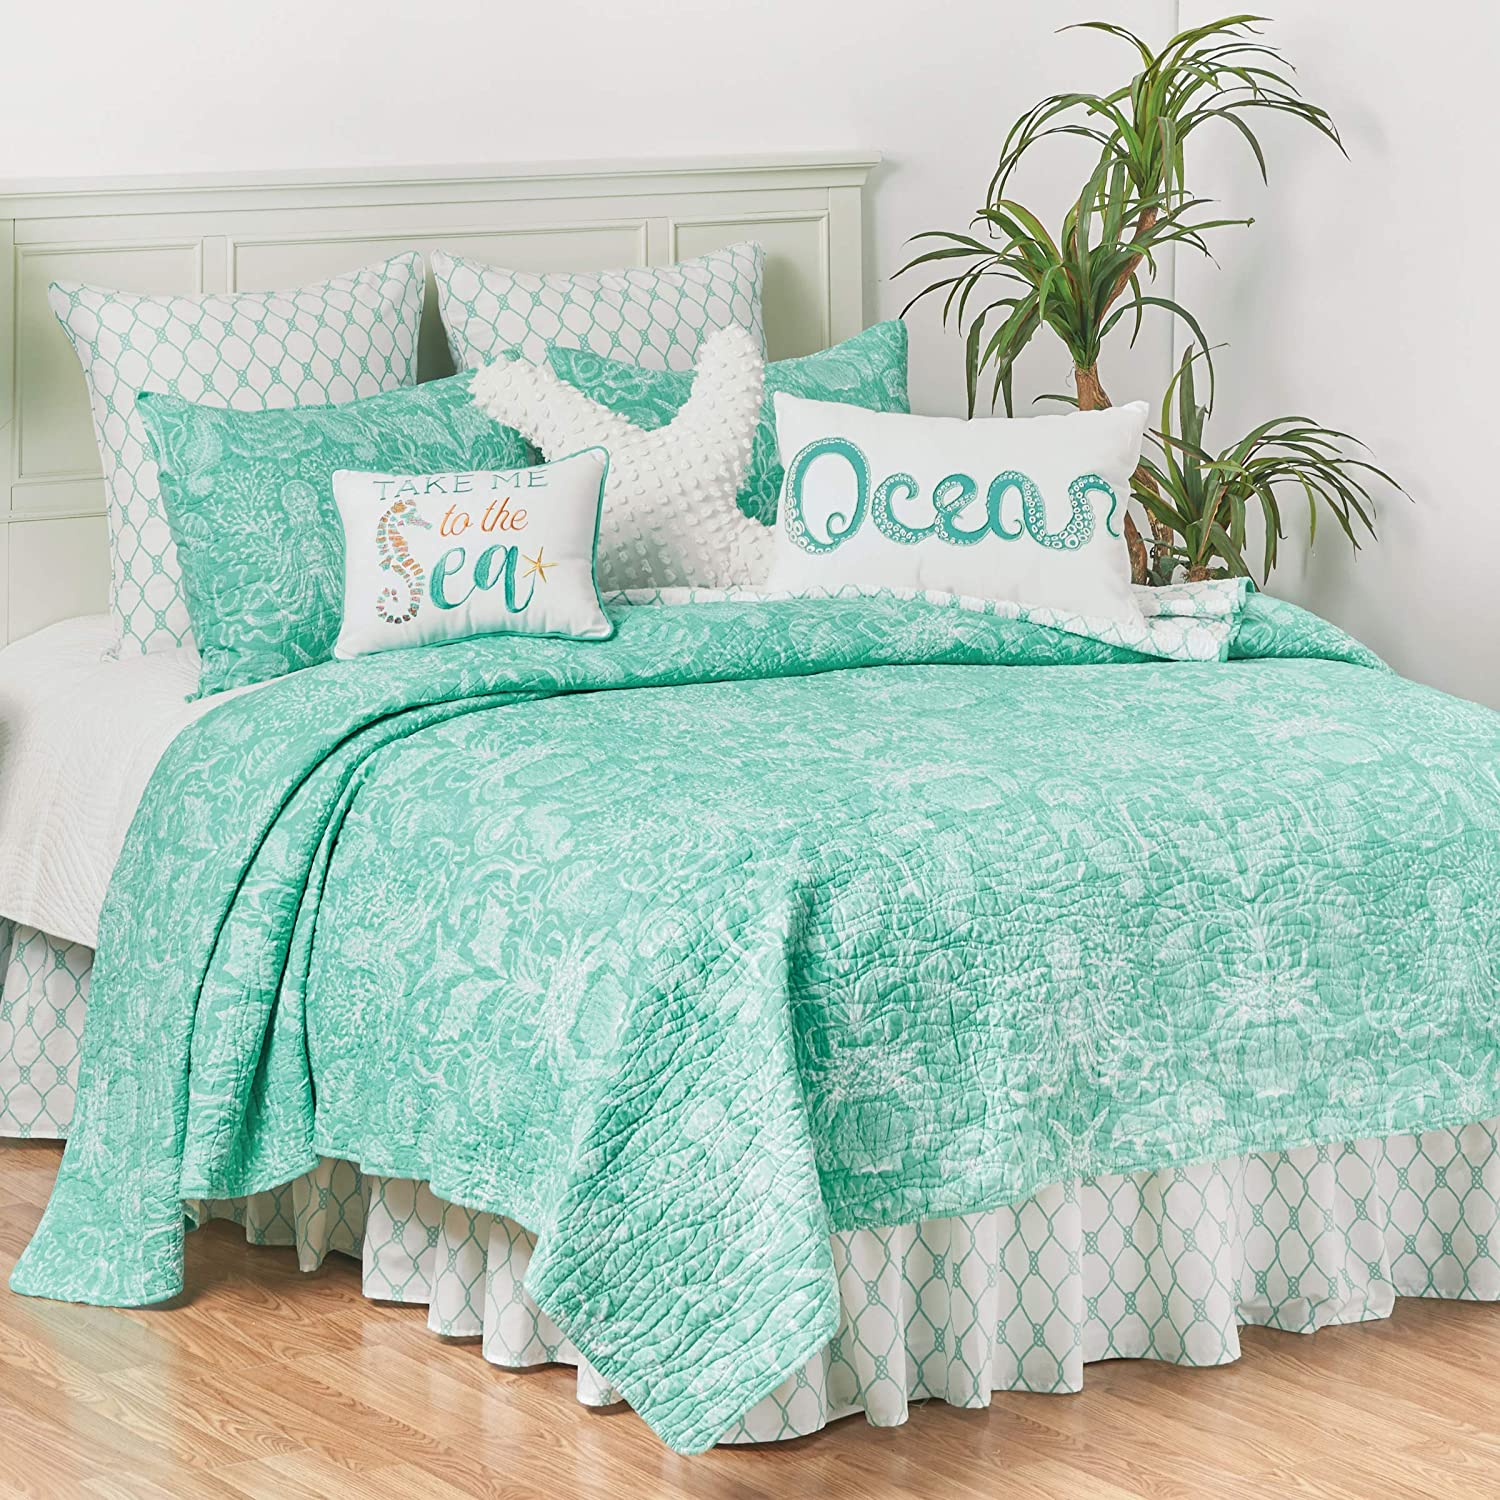 Amazon Com C F Home Blue And White Turquoise Bay Twin Cotton Quilt Set Reversible Bedding Seahorse Turtle Beach Ocean Coastal Twin 2 Piece Set Blue Home Kitchen